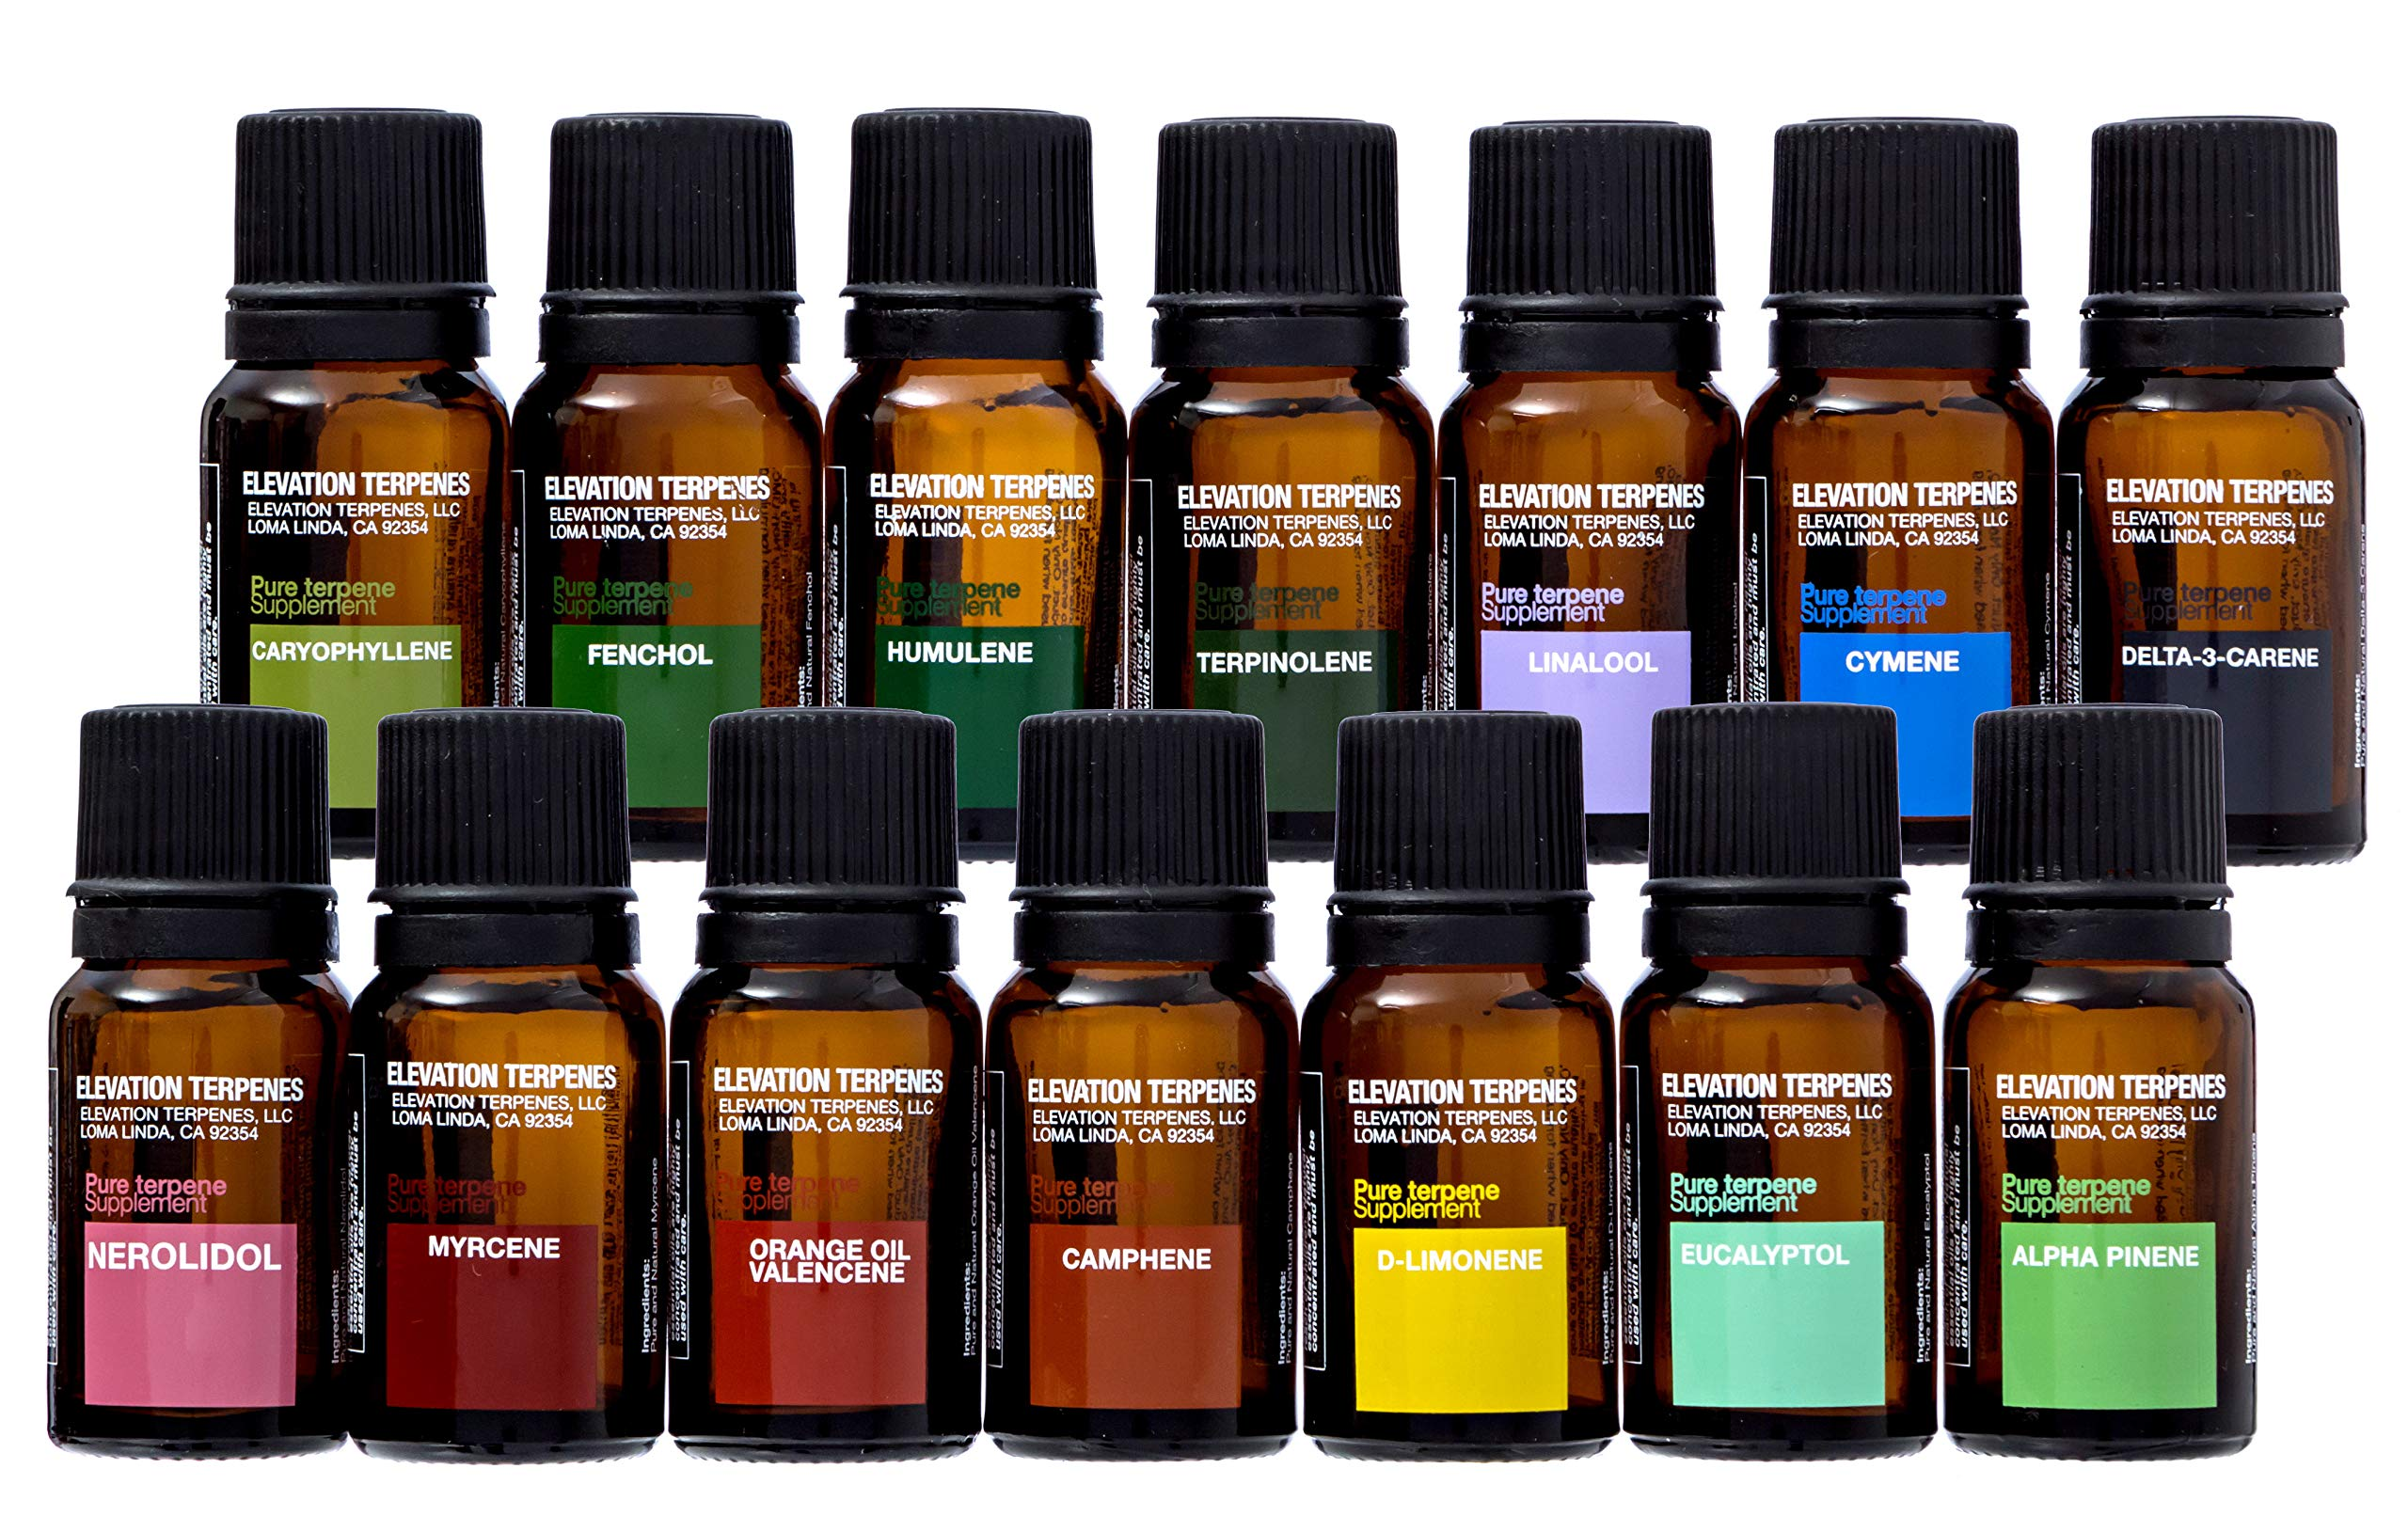 Elevation Terpenes Full-Spectrum Package, Made in the USA (All 14 Oils) by Elevation Terpenes